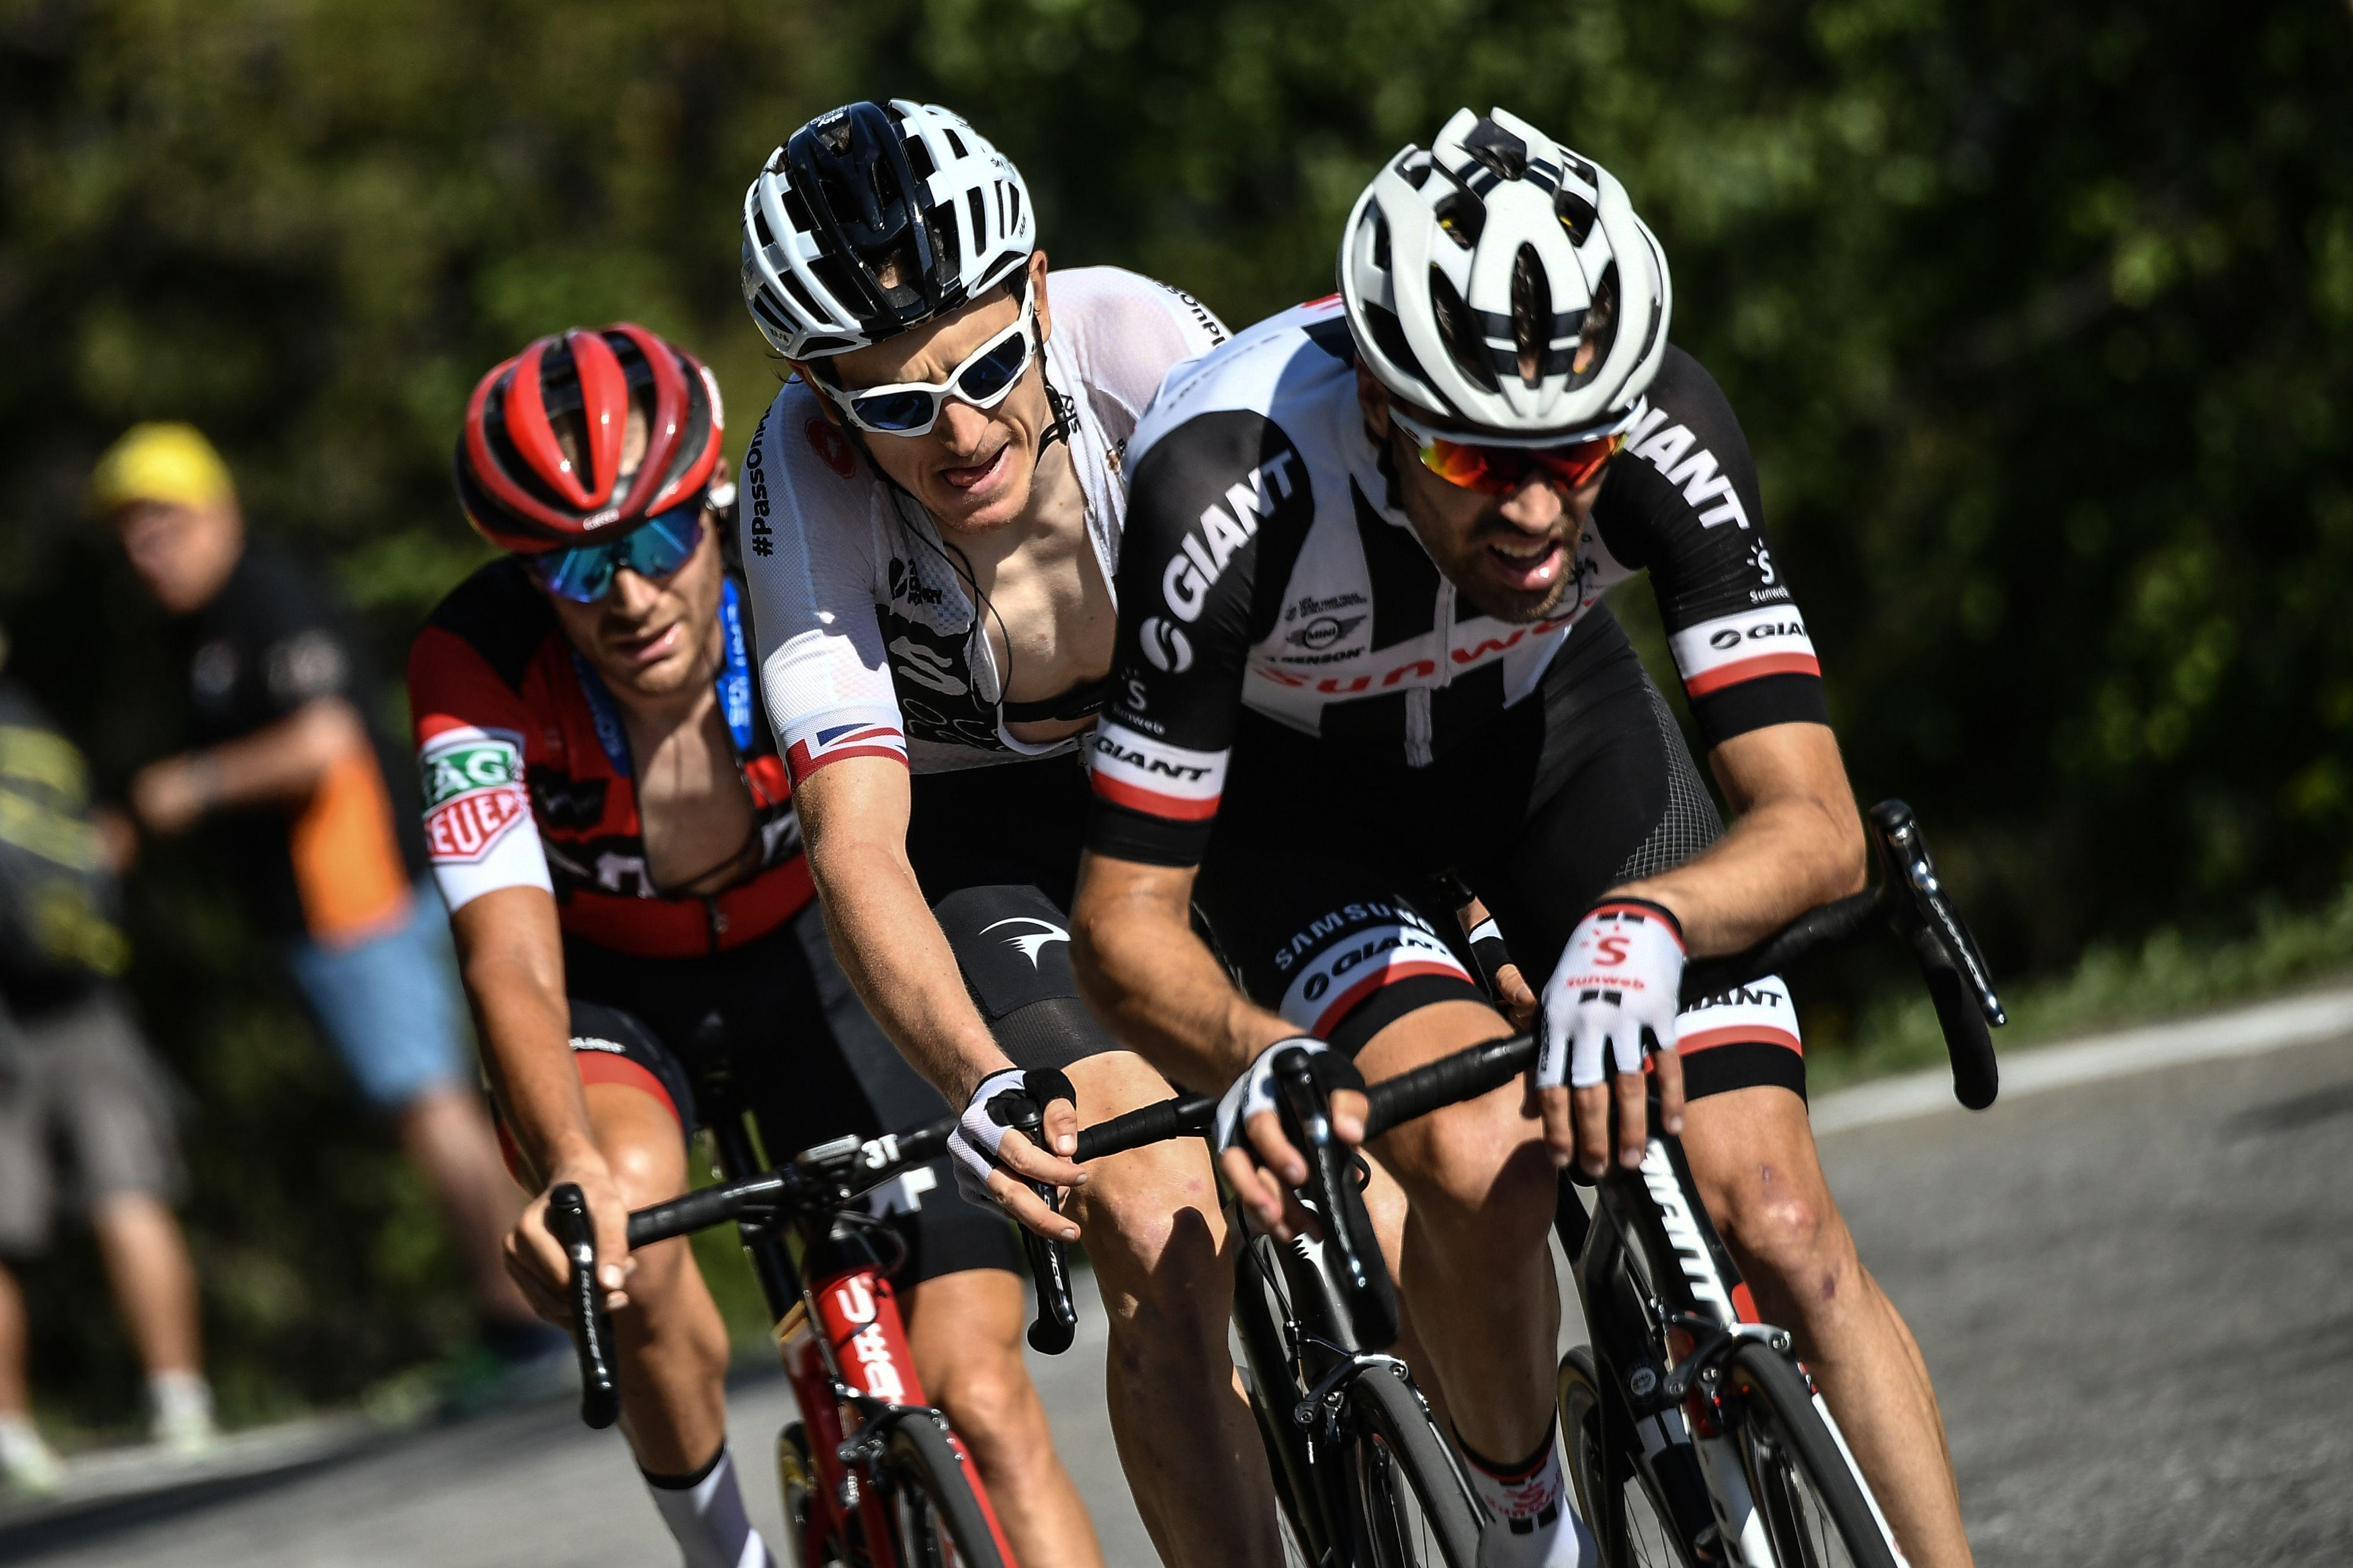 Thomas sat on the wheel of rival Tom Dumoulin until the final kilometre where he attacked and caught the leader Mikel Nieve